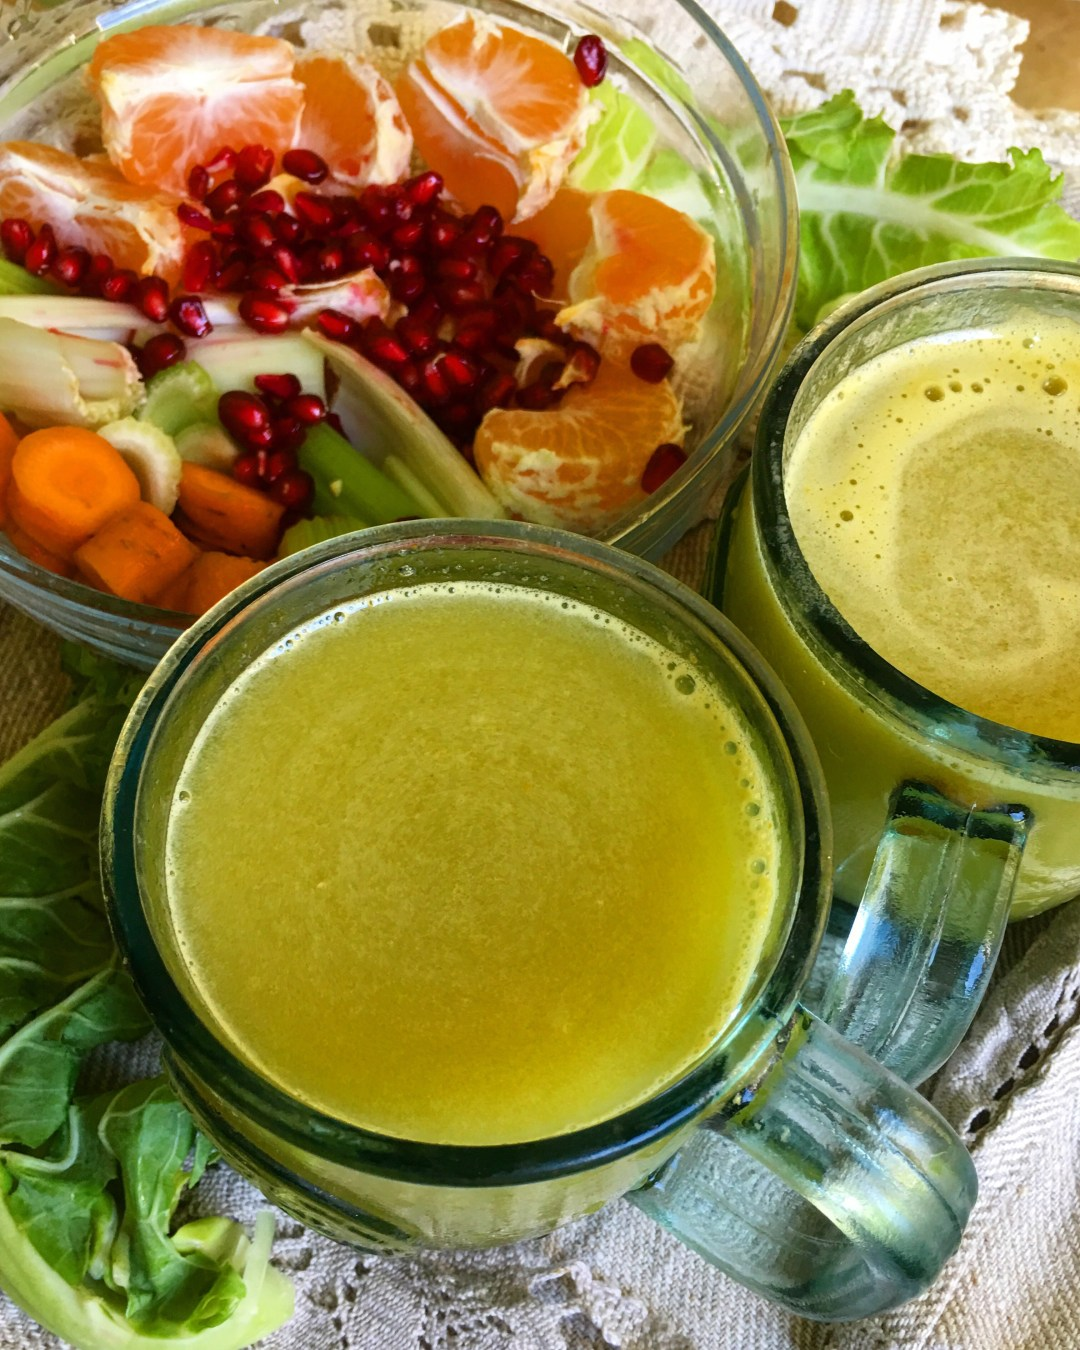 Homemade juices that taste fantastic